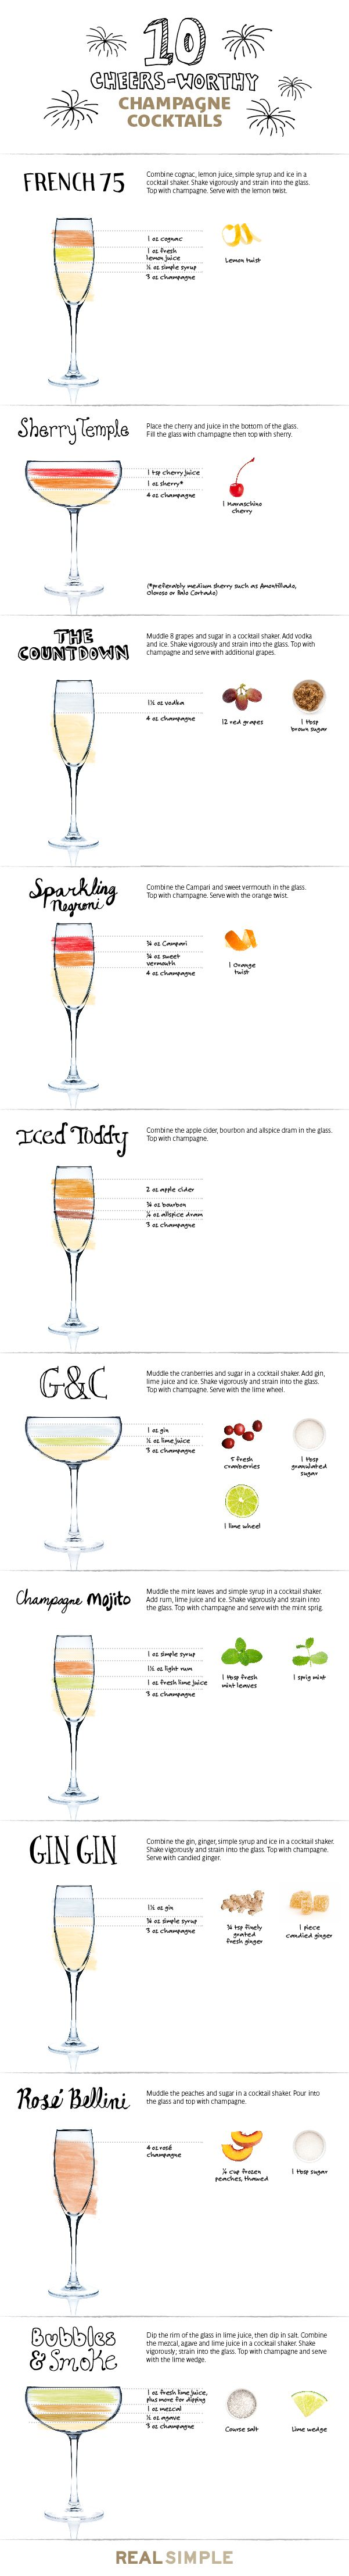 10 simple champagne cocktail recipes.